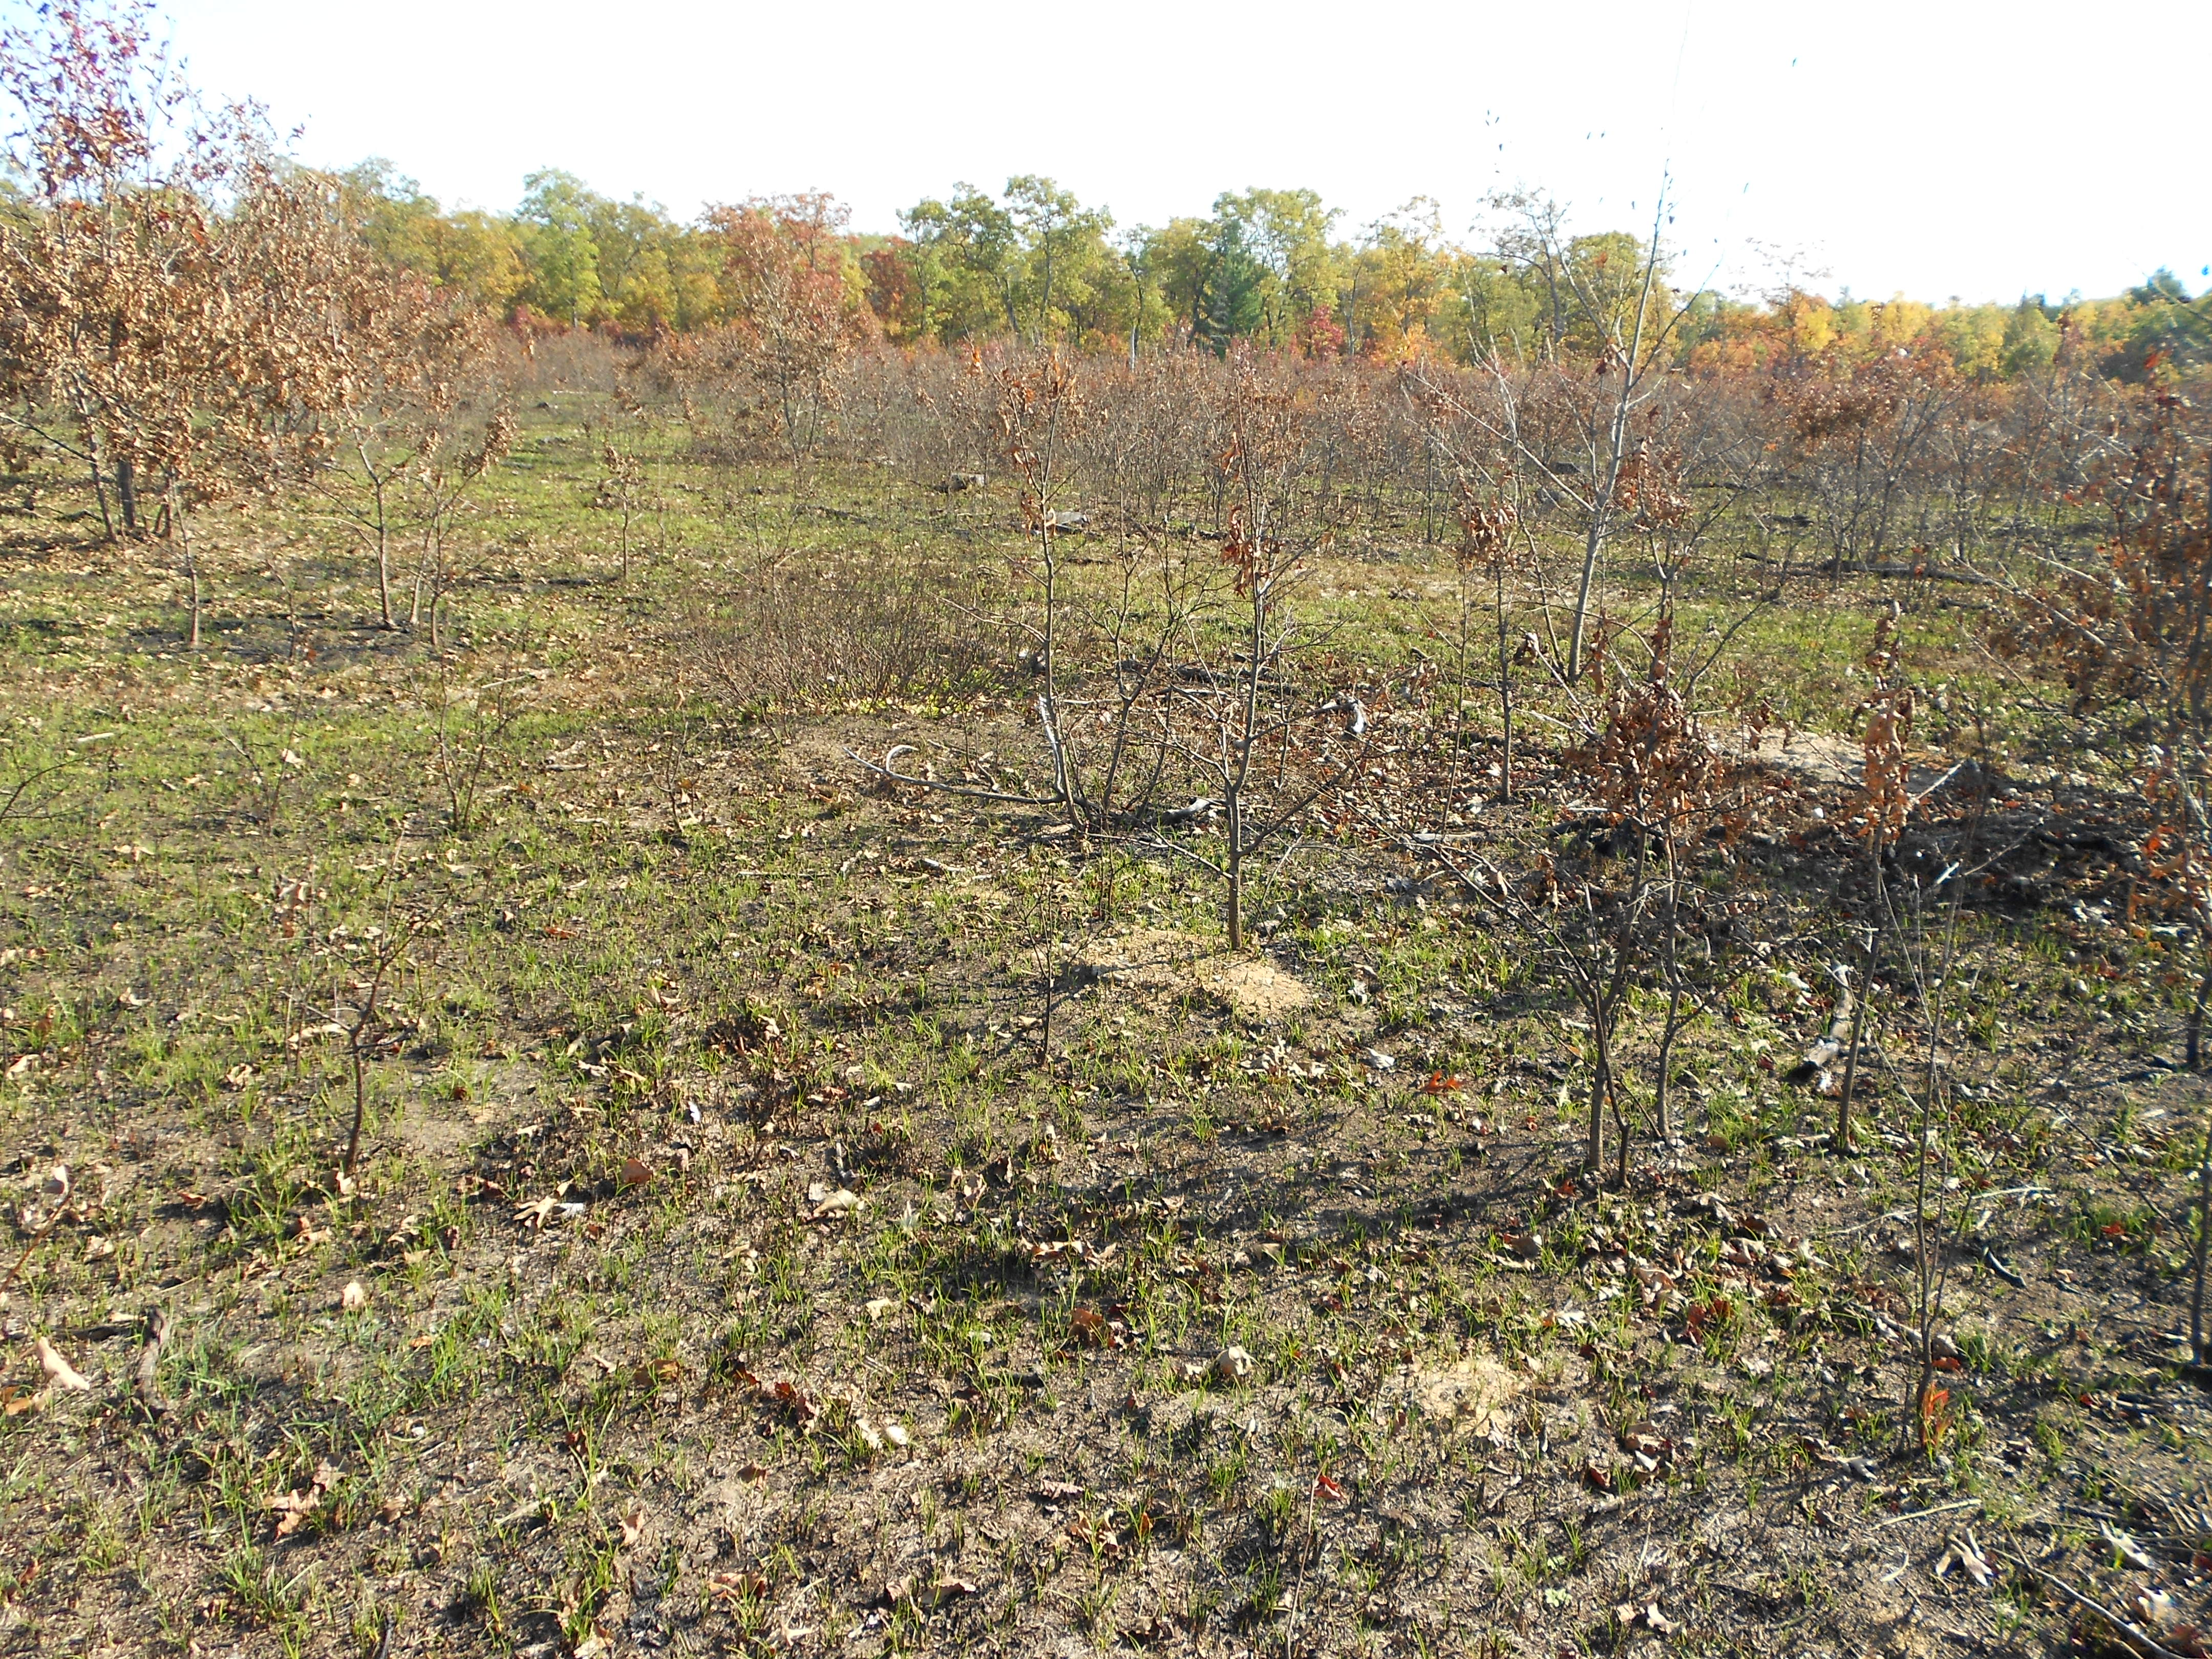 Last fall's controlled burn was revegetating nicely - should be amazing this spring